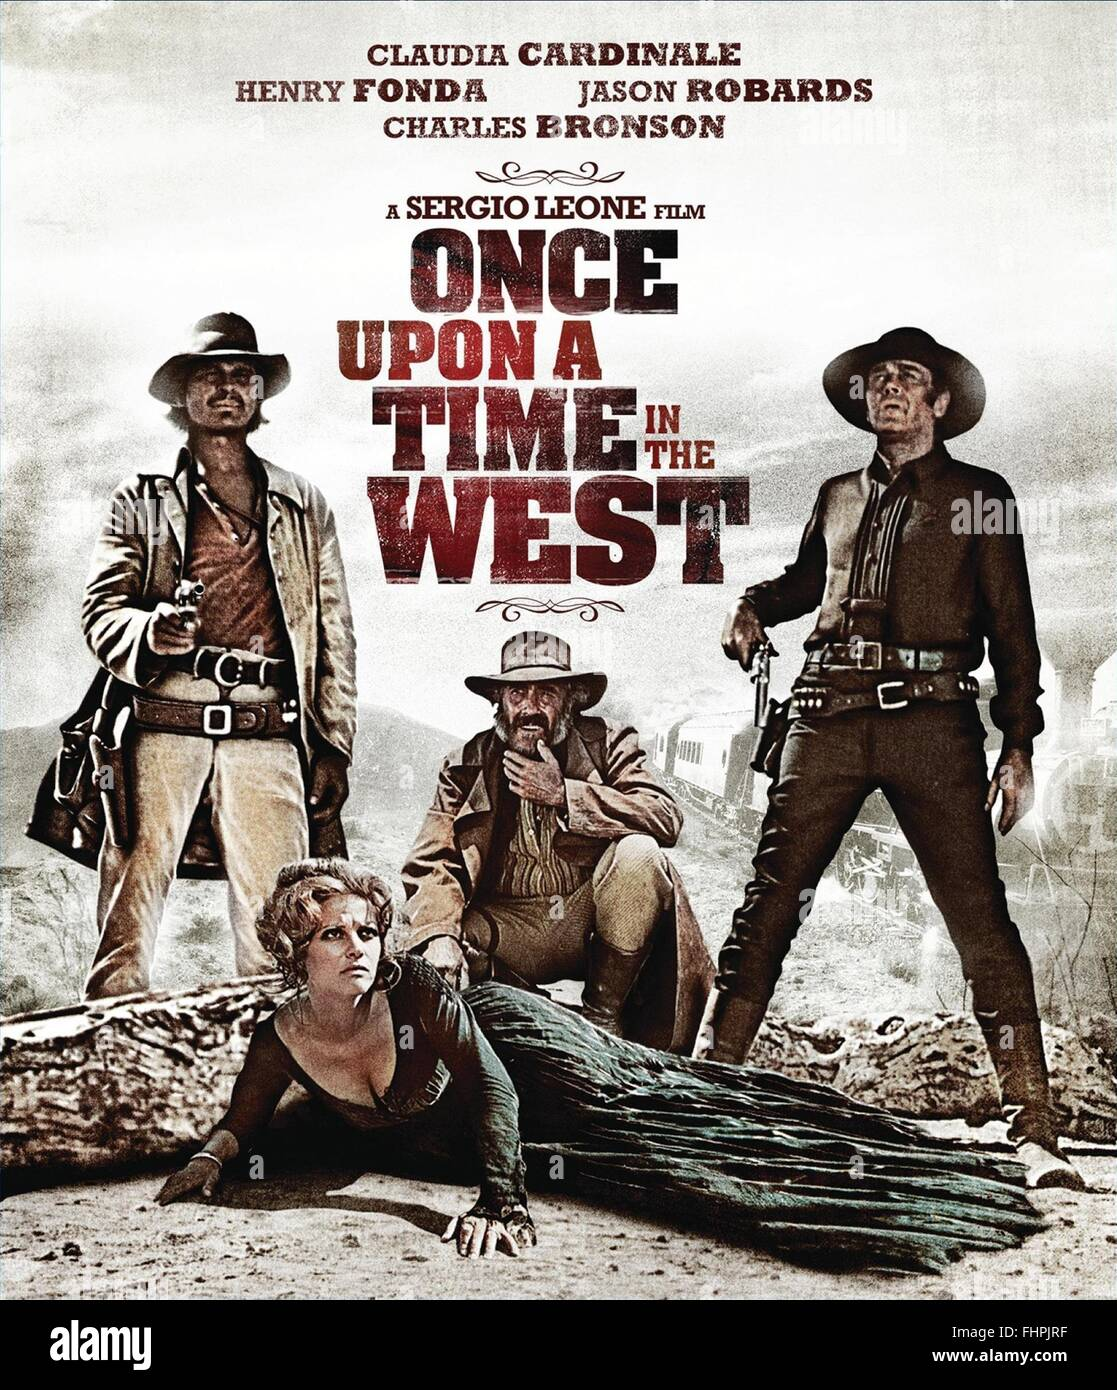 THE CLASSIC HOLLYWOOD WESTERN 1950-1970 Charles-bronson-claudia-cardinale-jason-robards-henry-fonda-poster-FHPJRF